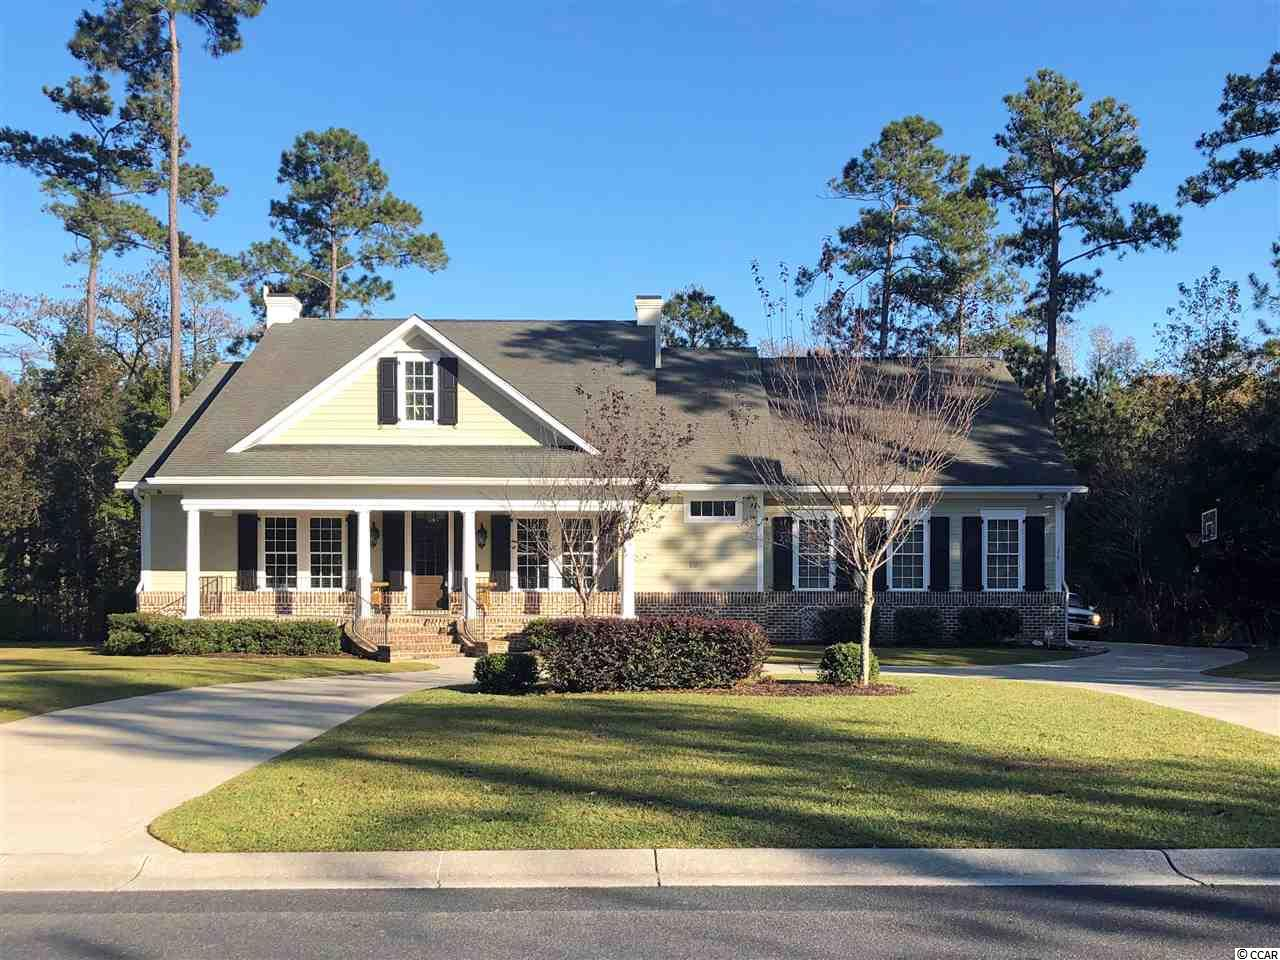 Beautiful low country home with private frontage on Collins Creek which leads to the Waccamaw River as well as private saltwater pool. This single-level, 4 bedroom (possible 5 bdrm), 3 bath home with office boasts an open floor plan with abundant natural light. Gorgeous eat-in kitchen and formal dining room. Just off the large foyer is the light-filled study with custom built-ins. Spacious, climate-controlled sunroom with wet bar overlooks the pool. Split floor plan design provides privacy to the master suite. Hardwood flooring and custom closets throughout. Circular drive and side-loading garage. The gated community of Bellwood Landing provides residents with access to the Price Creek West amenity center with pool and kiddie pool, tennis courts, playground, grilling area, walking trails and more. Only minutes from beautiful beaches and convenient to schools, medical facilities, restaurants and shopping.